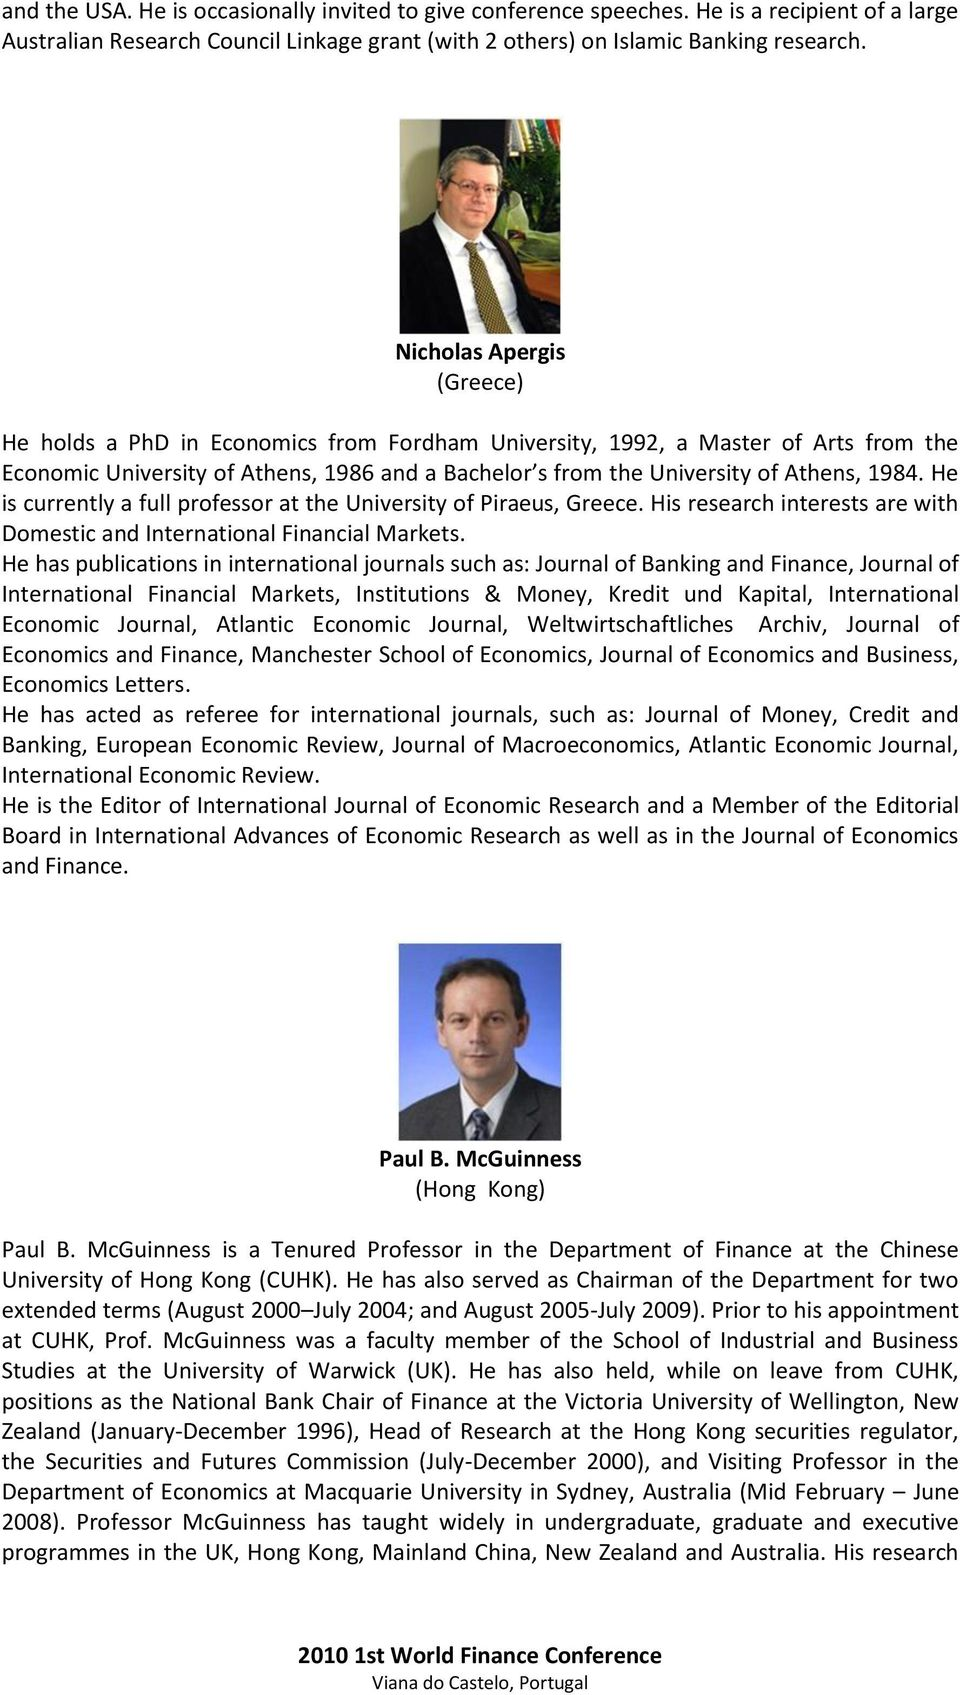 He is currently a full professor at the University of Piraeus, Greece. His research interests are with Domestic and International Financial Markets.